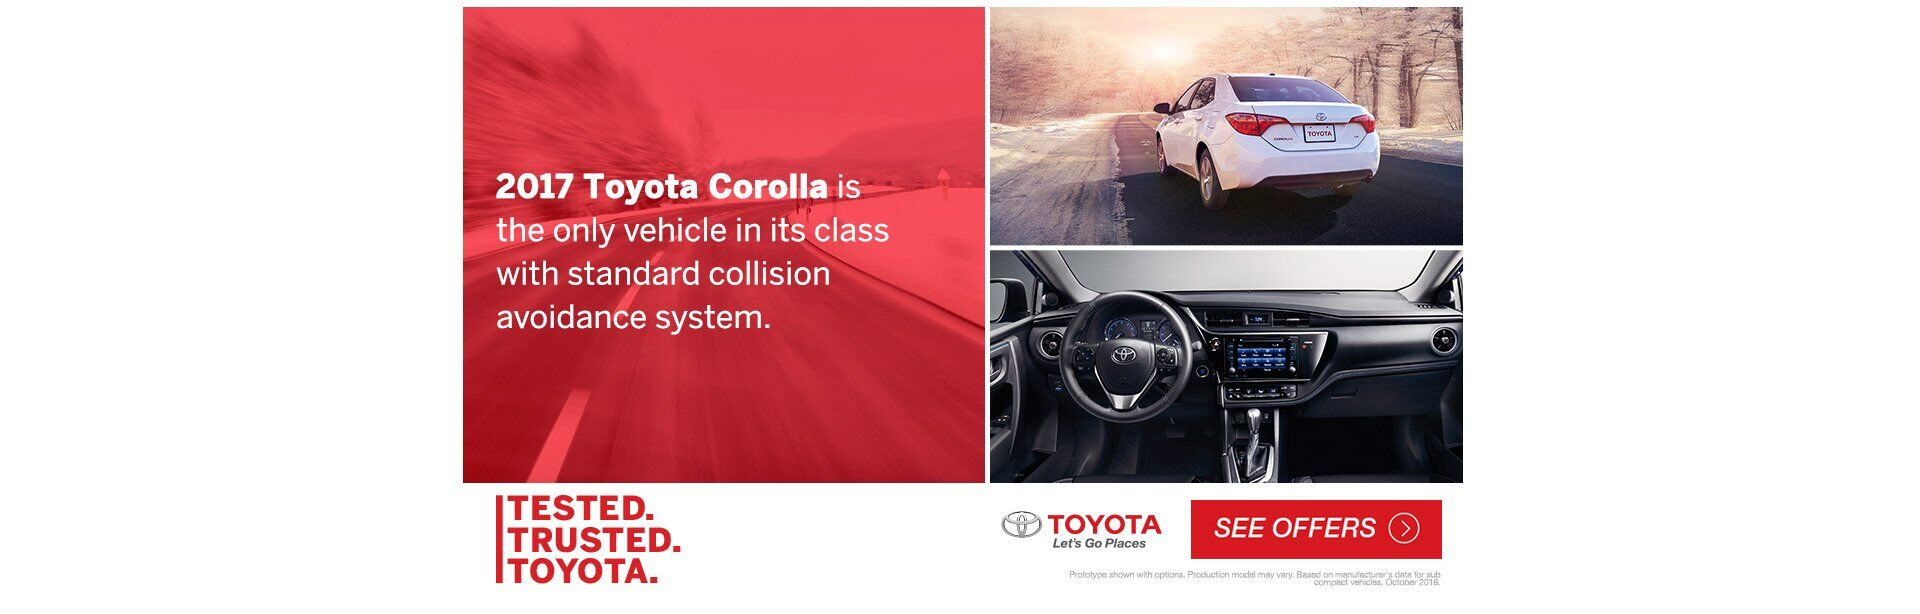 Toyota Dealership Green Bay WI   Used Cars Le Mieux & Son Toyota